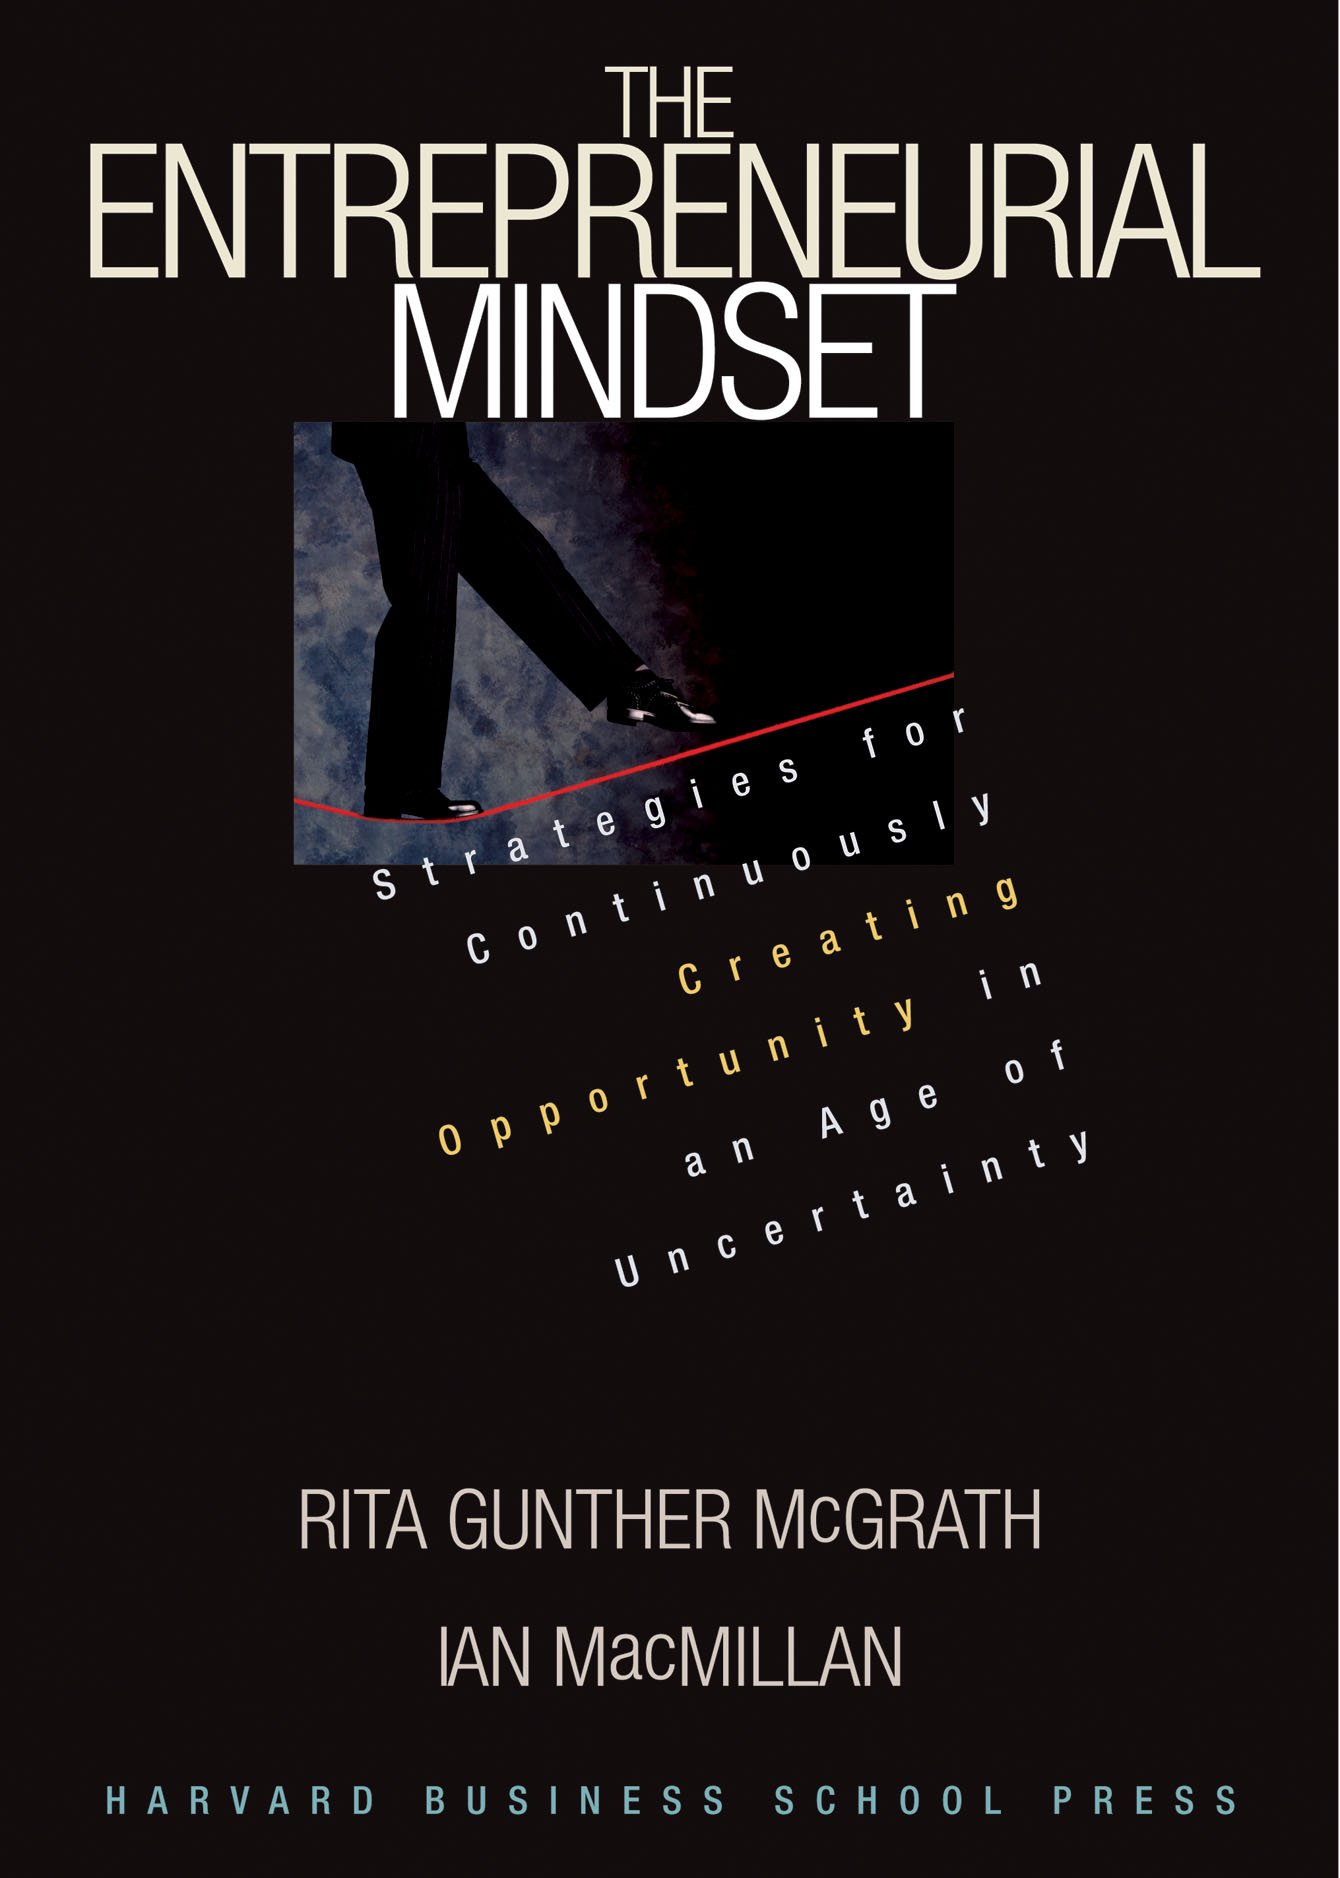 The Entrepreneurial Mindset: Strategies for Continuously